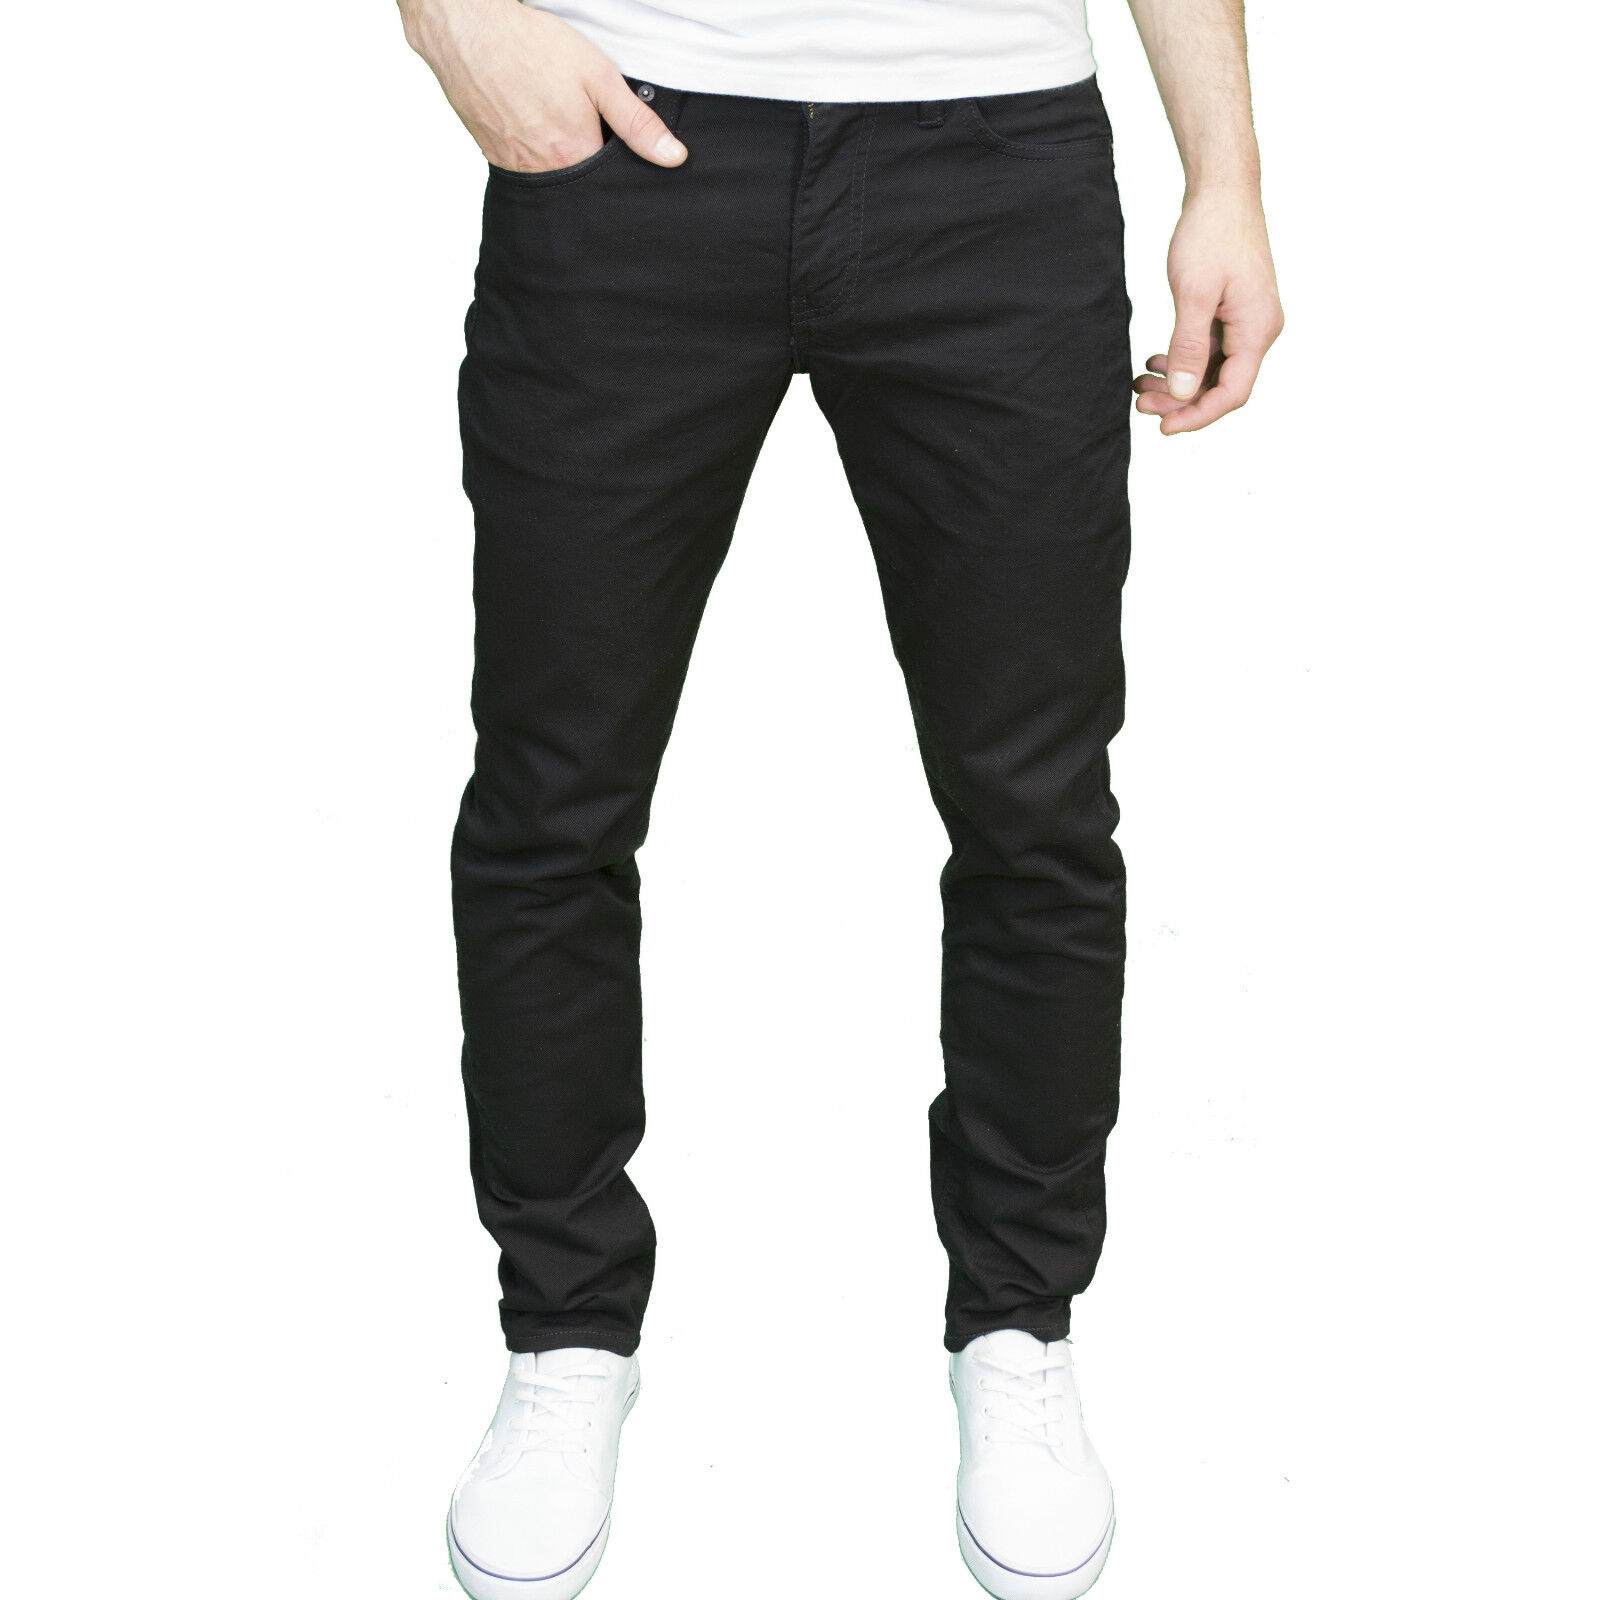 84fbedb83aa Details about Levi s 511 Mens Black Slim Fit Straight Leg Stretch Jeans